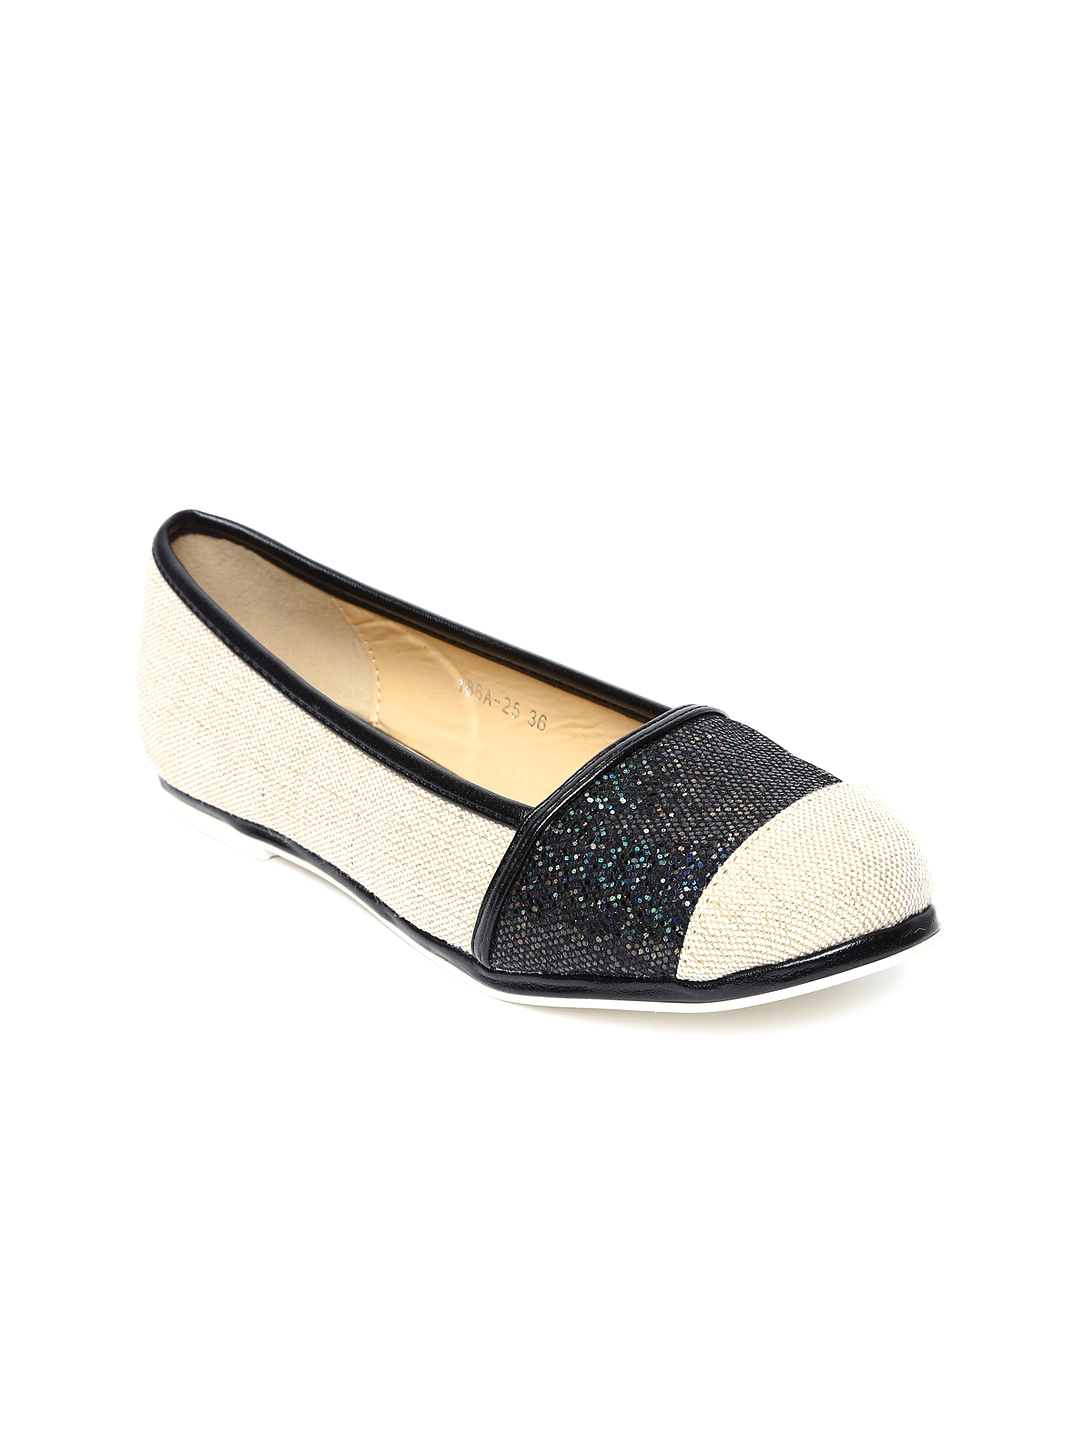 A pretty pair of ballet flats or classic Mary Janes are ideal for casual outfits. Match your favorite little black dress with a sophisticated sandal featuring glamorous straps or .